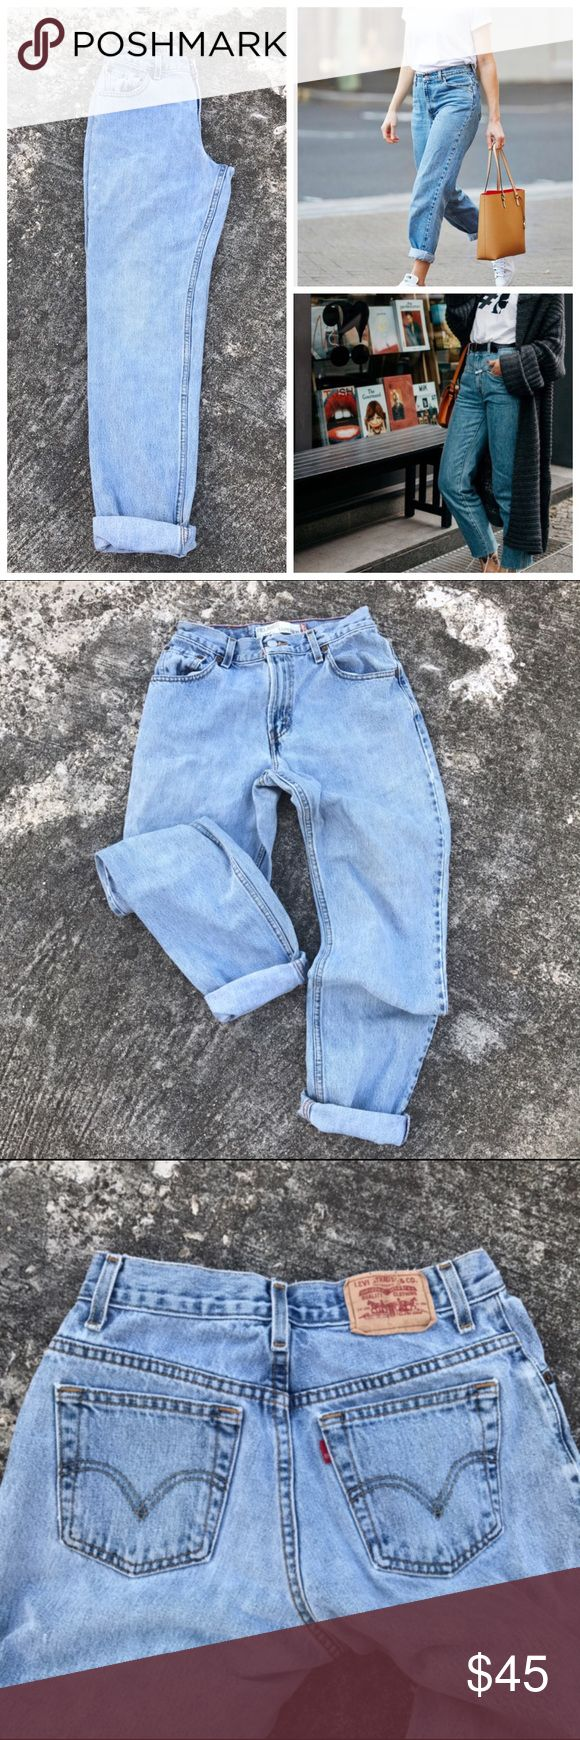 Levi's 550 Mom Jeans Tapered Light Wash Tapered The perfect mom jeans.  So many ways to style them! These are in perfect condition with only two small distress marks on the outside of the right leg (pictured) It just makes them cooler 😎 Size 6L so perfect for cuffing!  Offers welcome! B3 Levi's Jeans